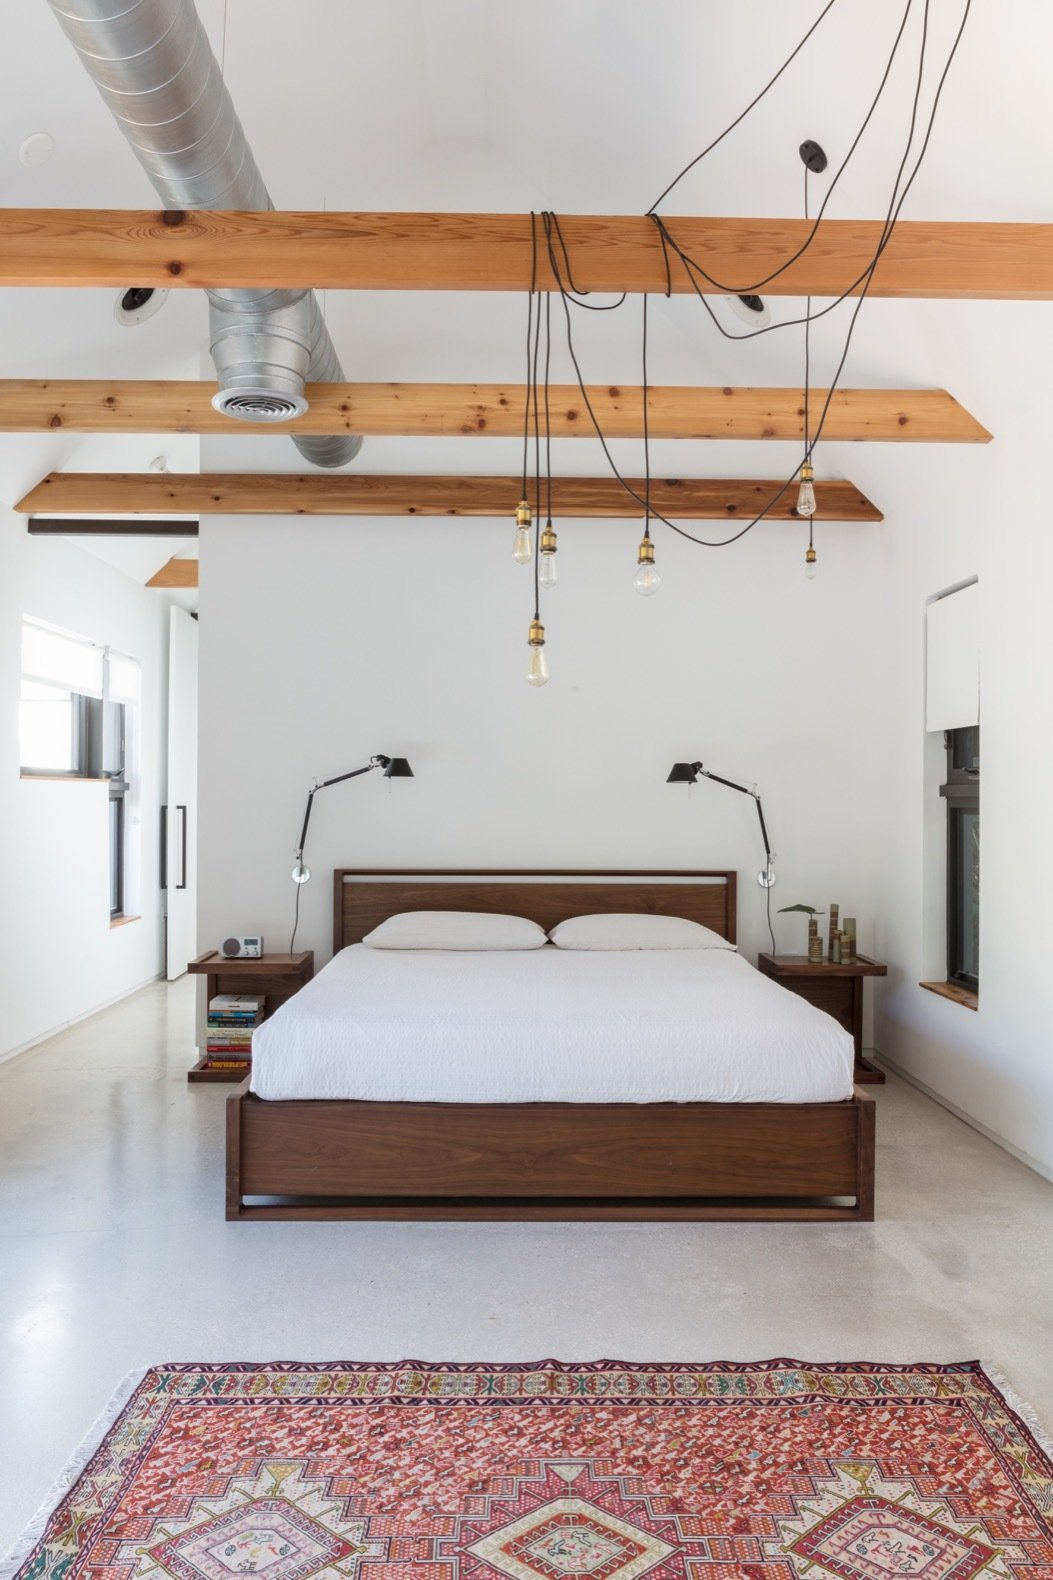 Bedroom, Bed, Night Stands, Table Lighting, Concrete Floor, Pendant Lighting, Rug Floor, and Recessed Lighting Natural light fills every room of the bright and airy addition.  Best Photos from A Minimalist Bungalow in Miami Welcomes a Sleek New Addition